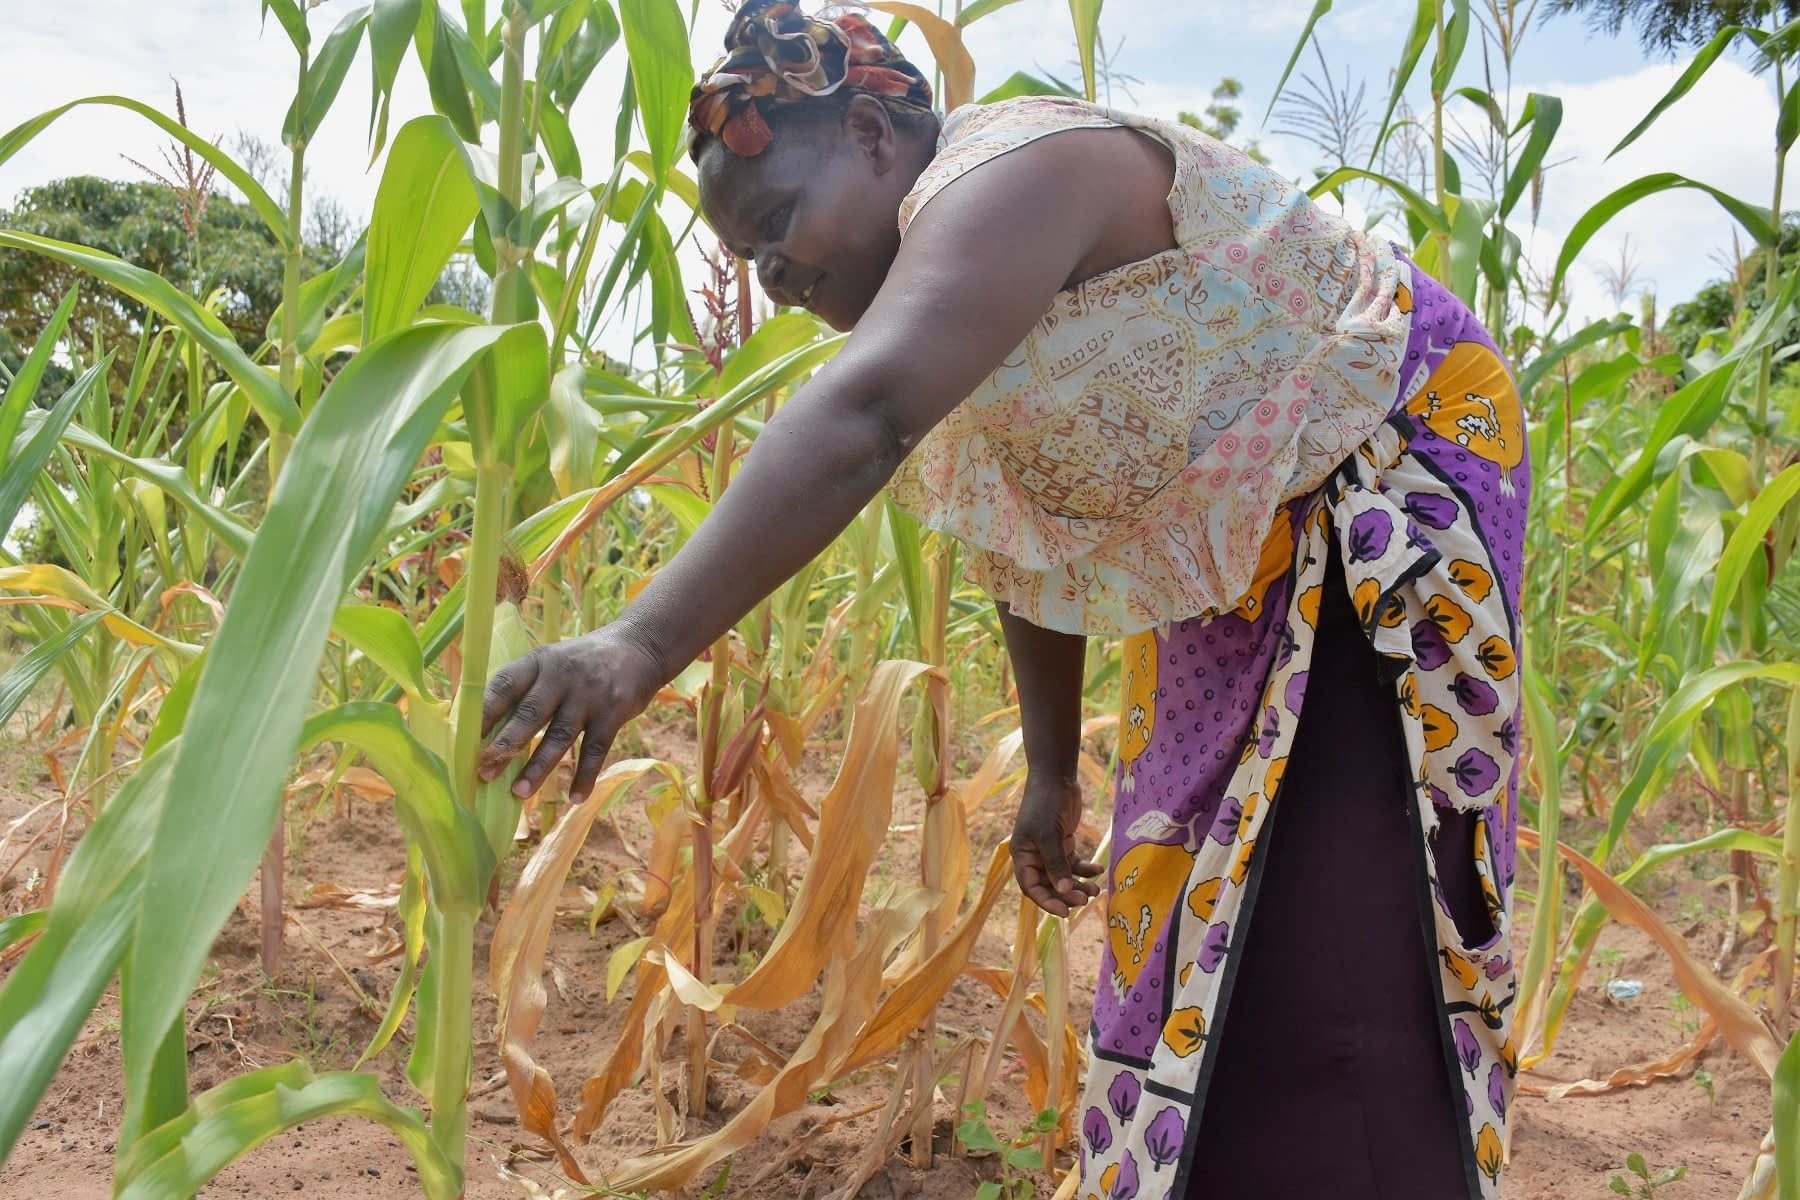 Mary Munini, a smallholder farmer in Vyulya, in Kenya's Machakos County, inspects her maize crop. She planted the farm-saved seed, which does not tolerate drought or severe heat, so she is expecting a massive crop loss this season. (Photo: Joshua Masinde/CIMMYT)